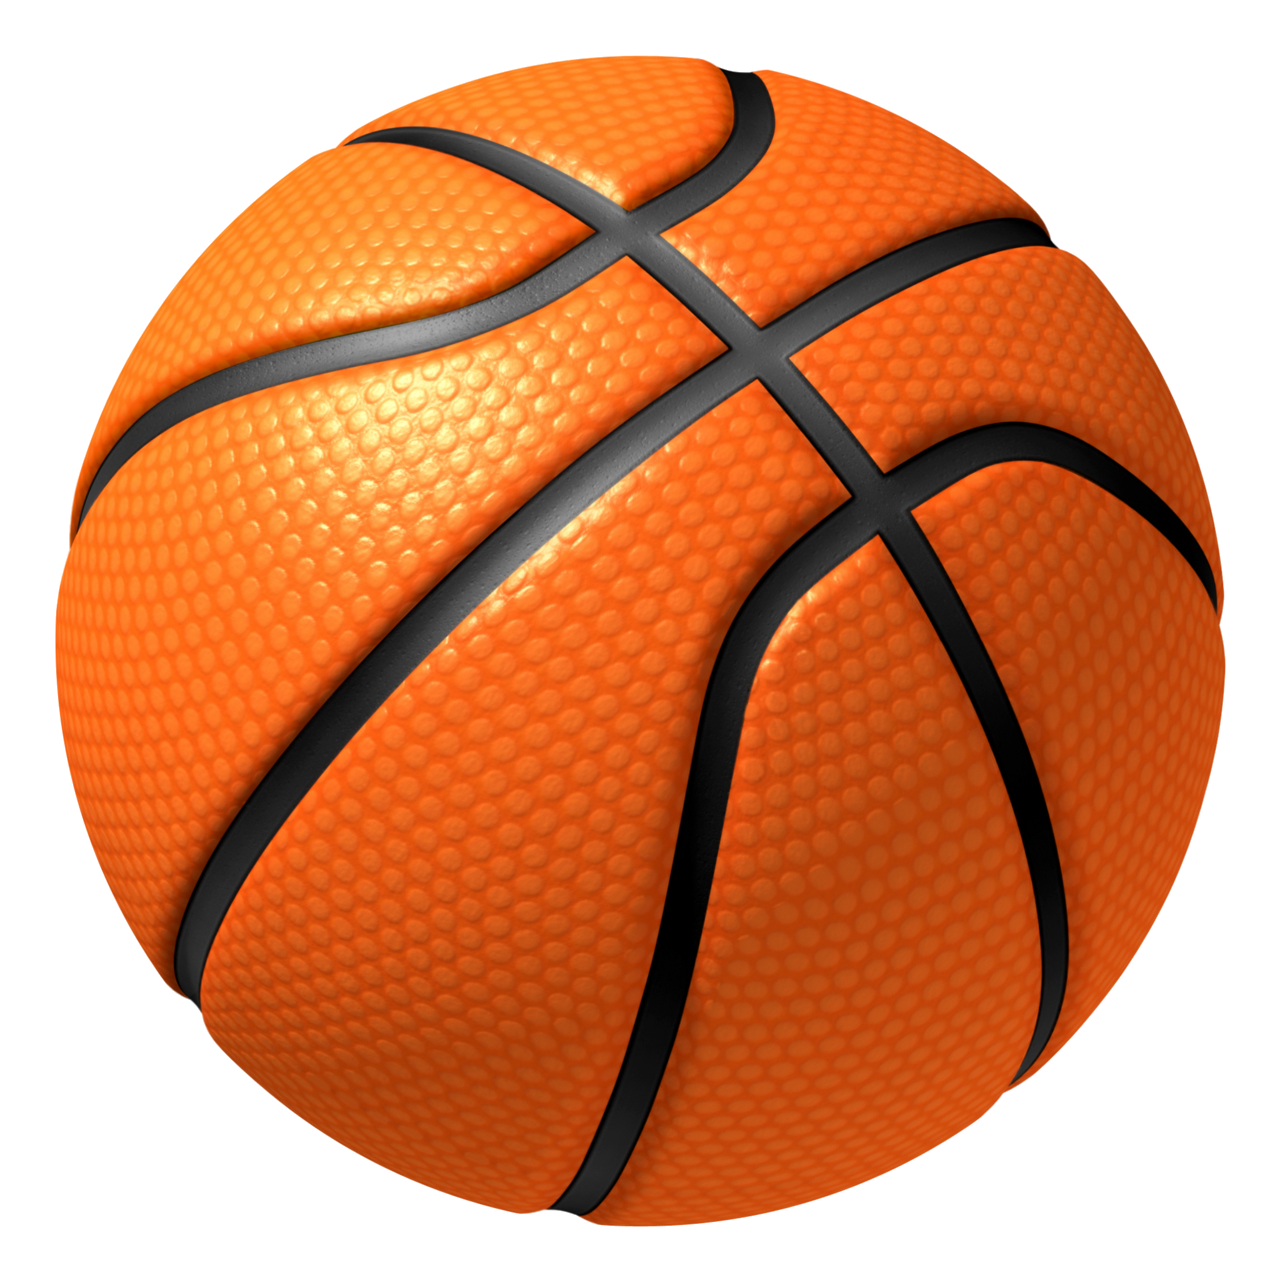 Background Basketball PNG Transparent Background, Free ... (1280 x 1280 Pixel)